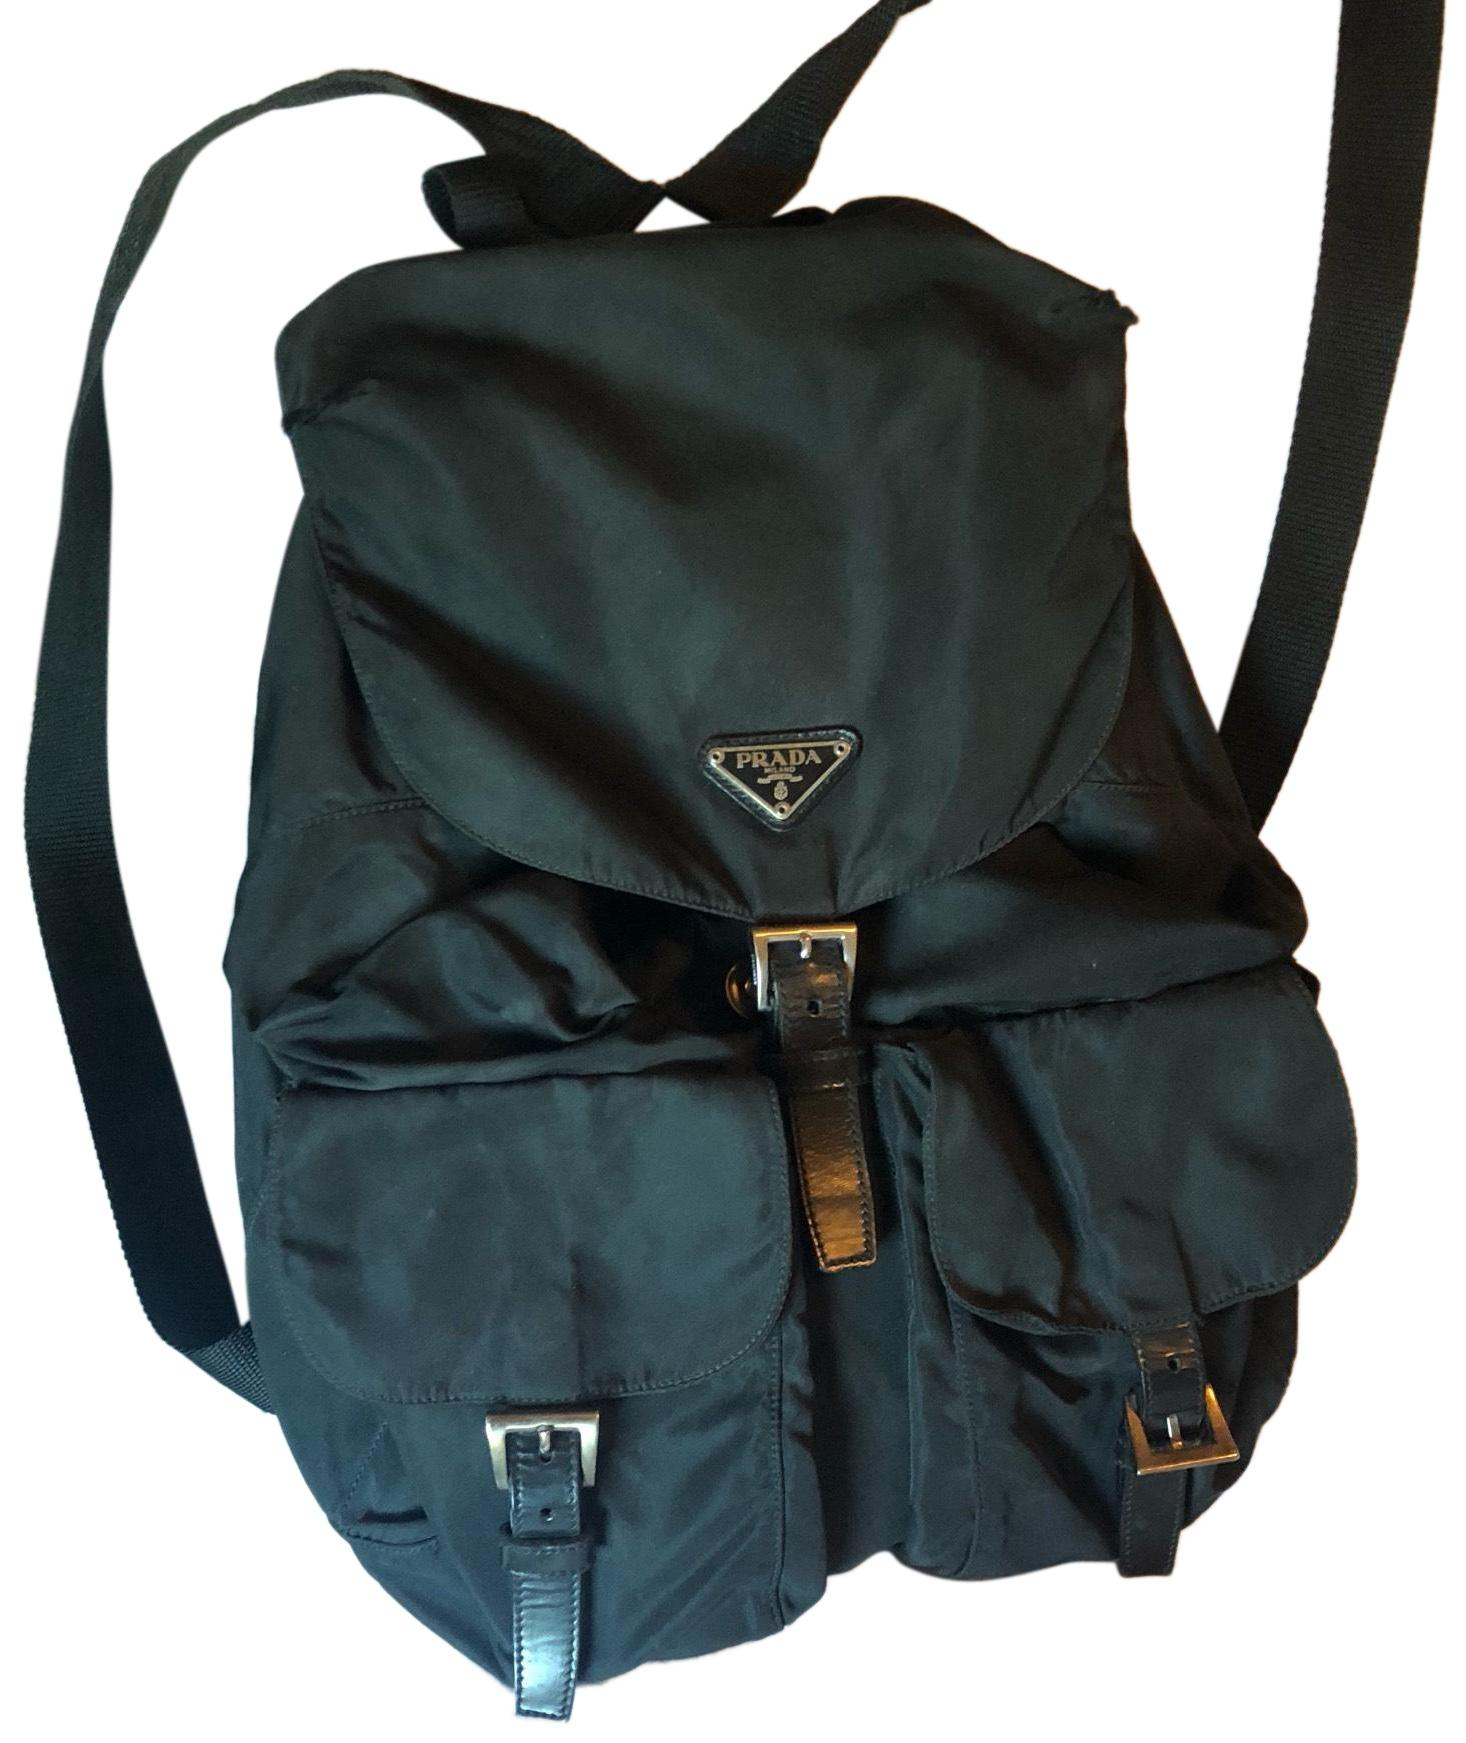 c41e8ece0e ... cheap prada backpacks on sale up to 70 off at tradesy af228 23989